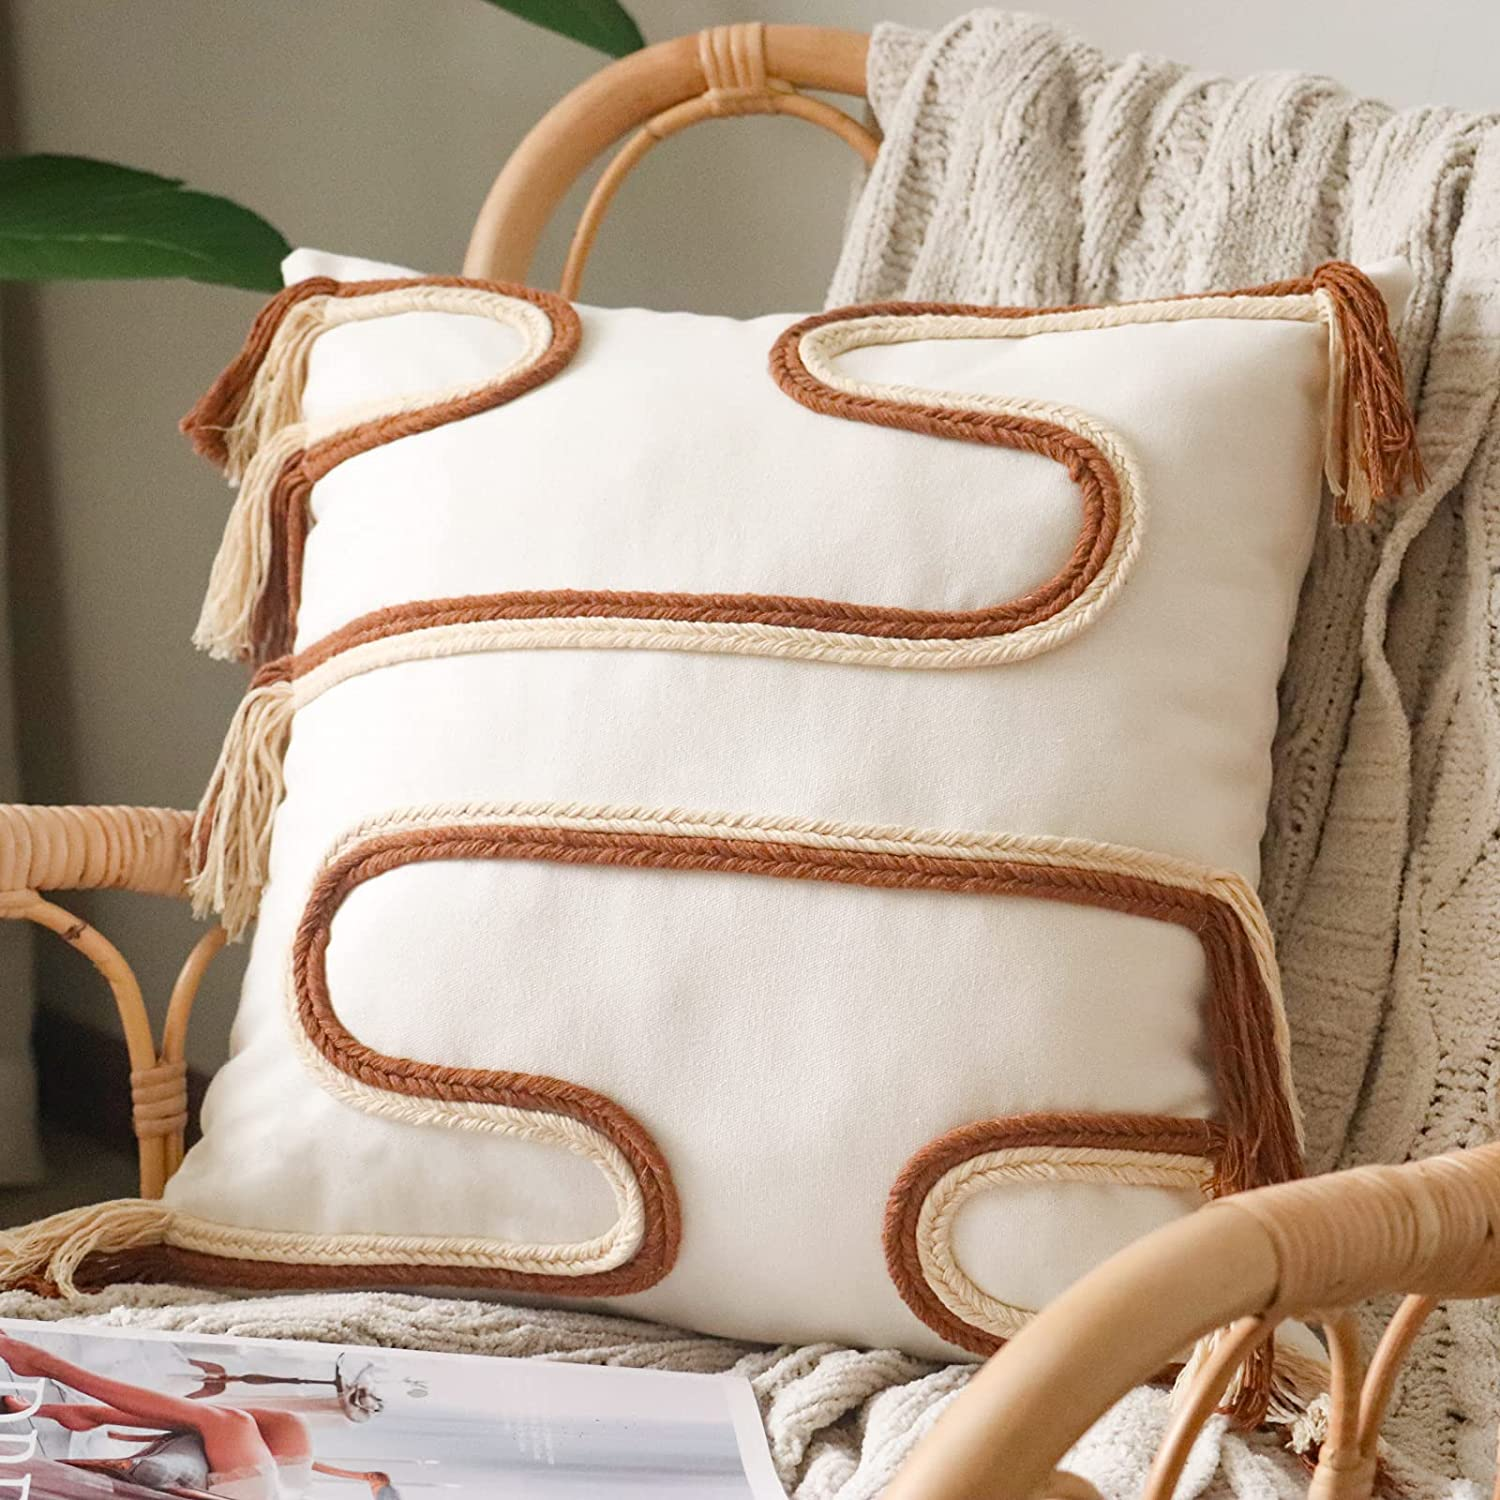 Jonhier Bohemian Throw Pillow Covers, Mid Century Simplicity Square Pillow Case with Fringes, Neutral Textured Cushion Cases, Boho Farmhouse Décor for Living Room and Bedroom (18'' x 18'', White)